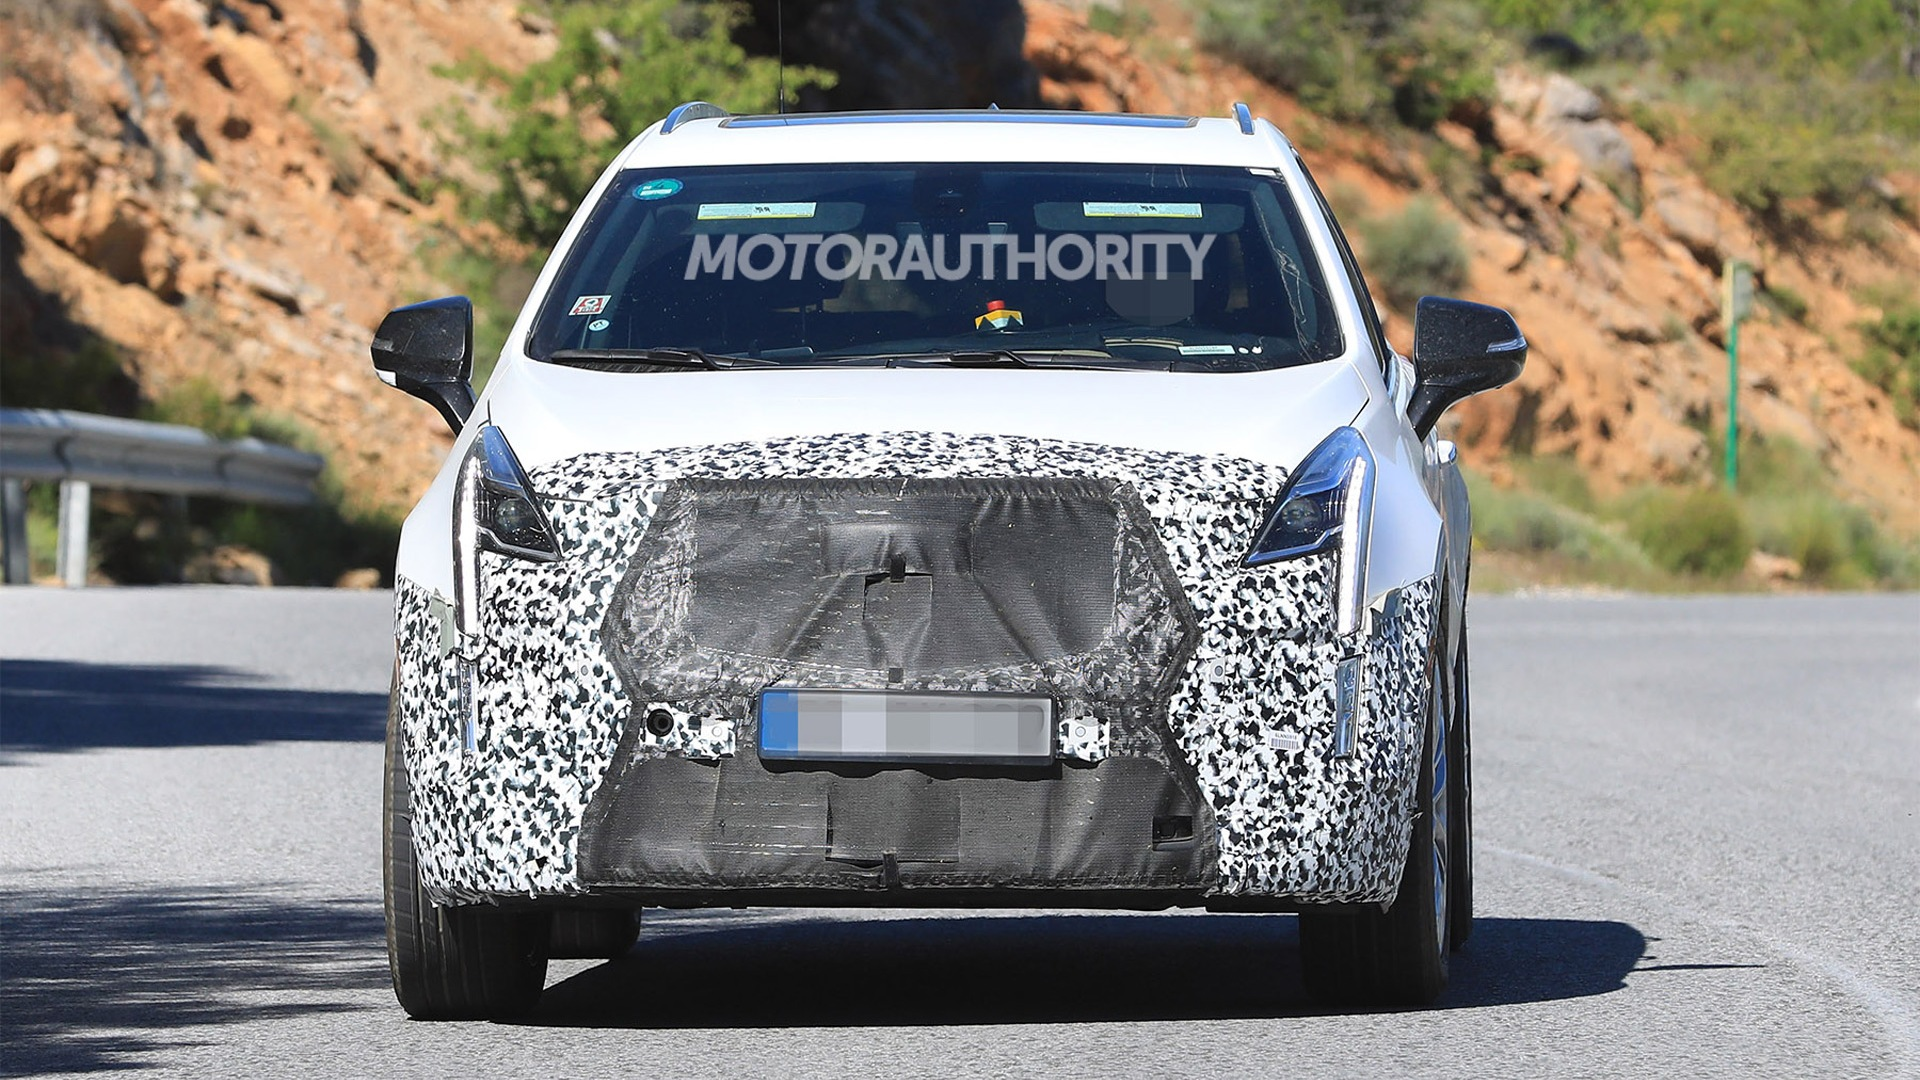 30 All New 2020 Spy Shots Cadillac Xt5 Photos